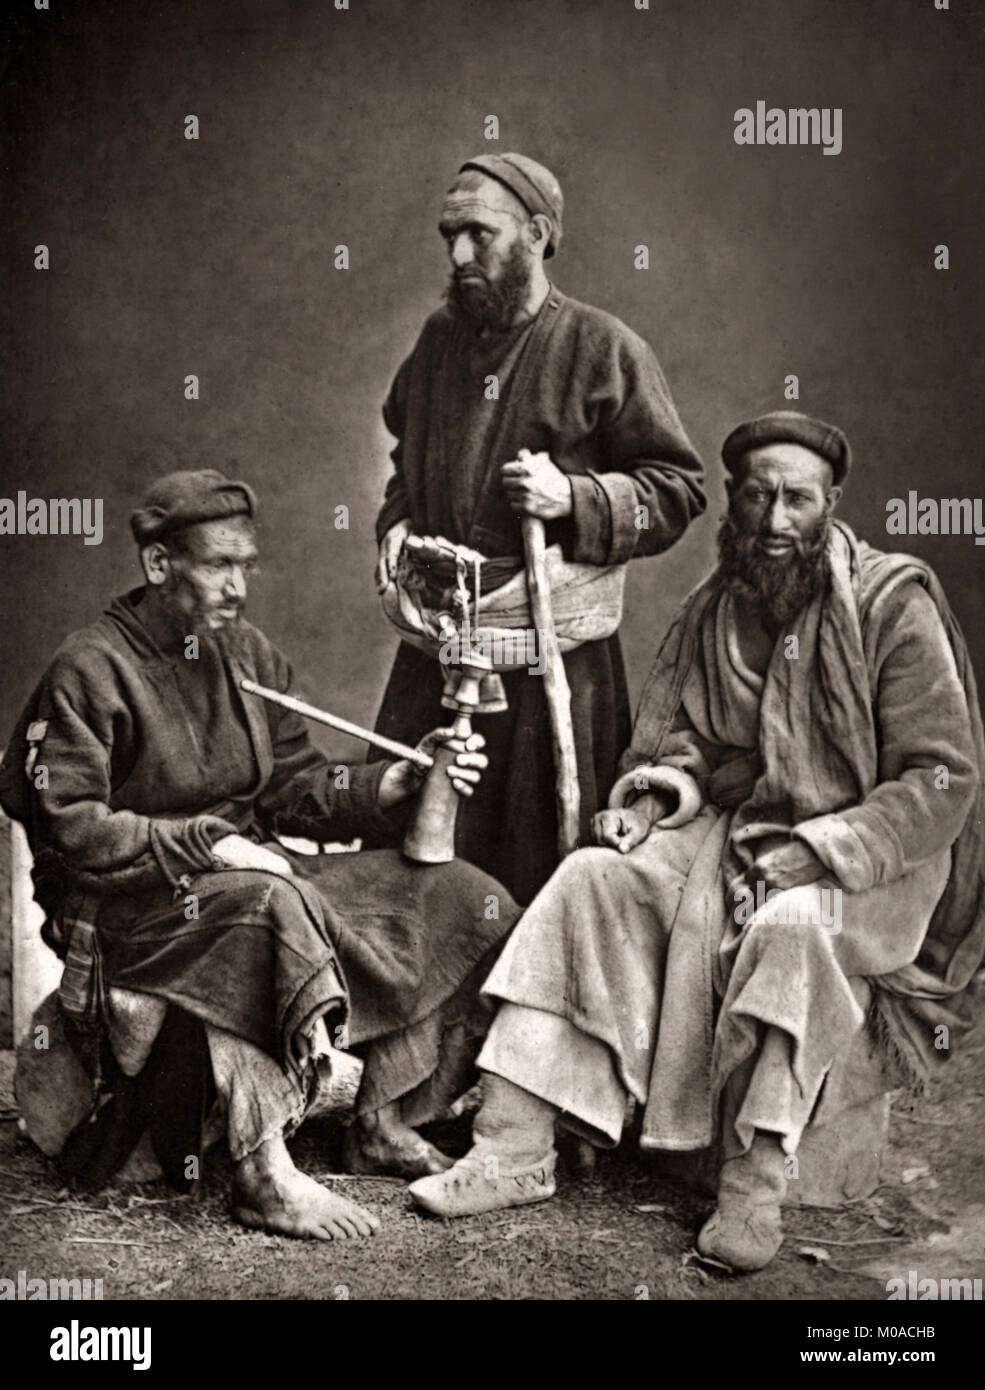 Dards, tribe from northern Pakistan, north-western India, and eastern Afghanistan, c.1880's - Stock Image